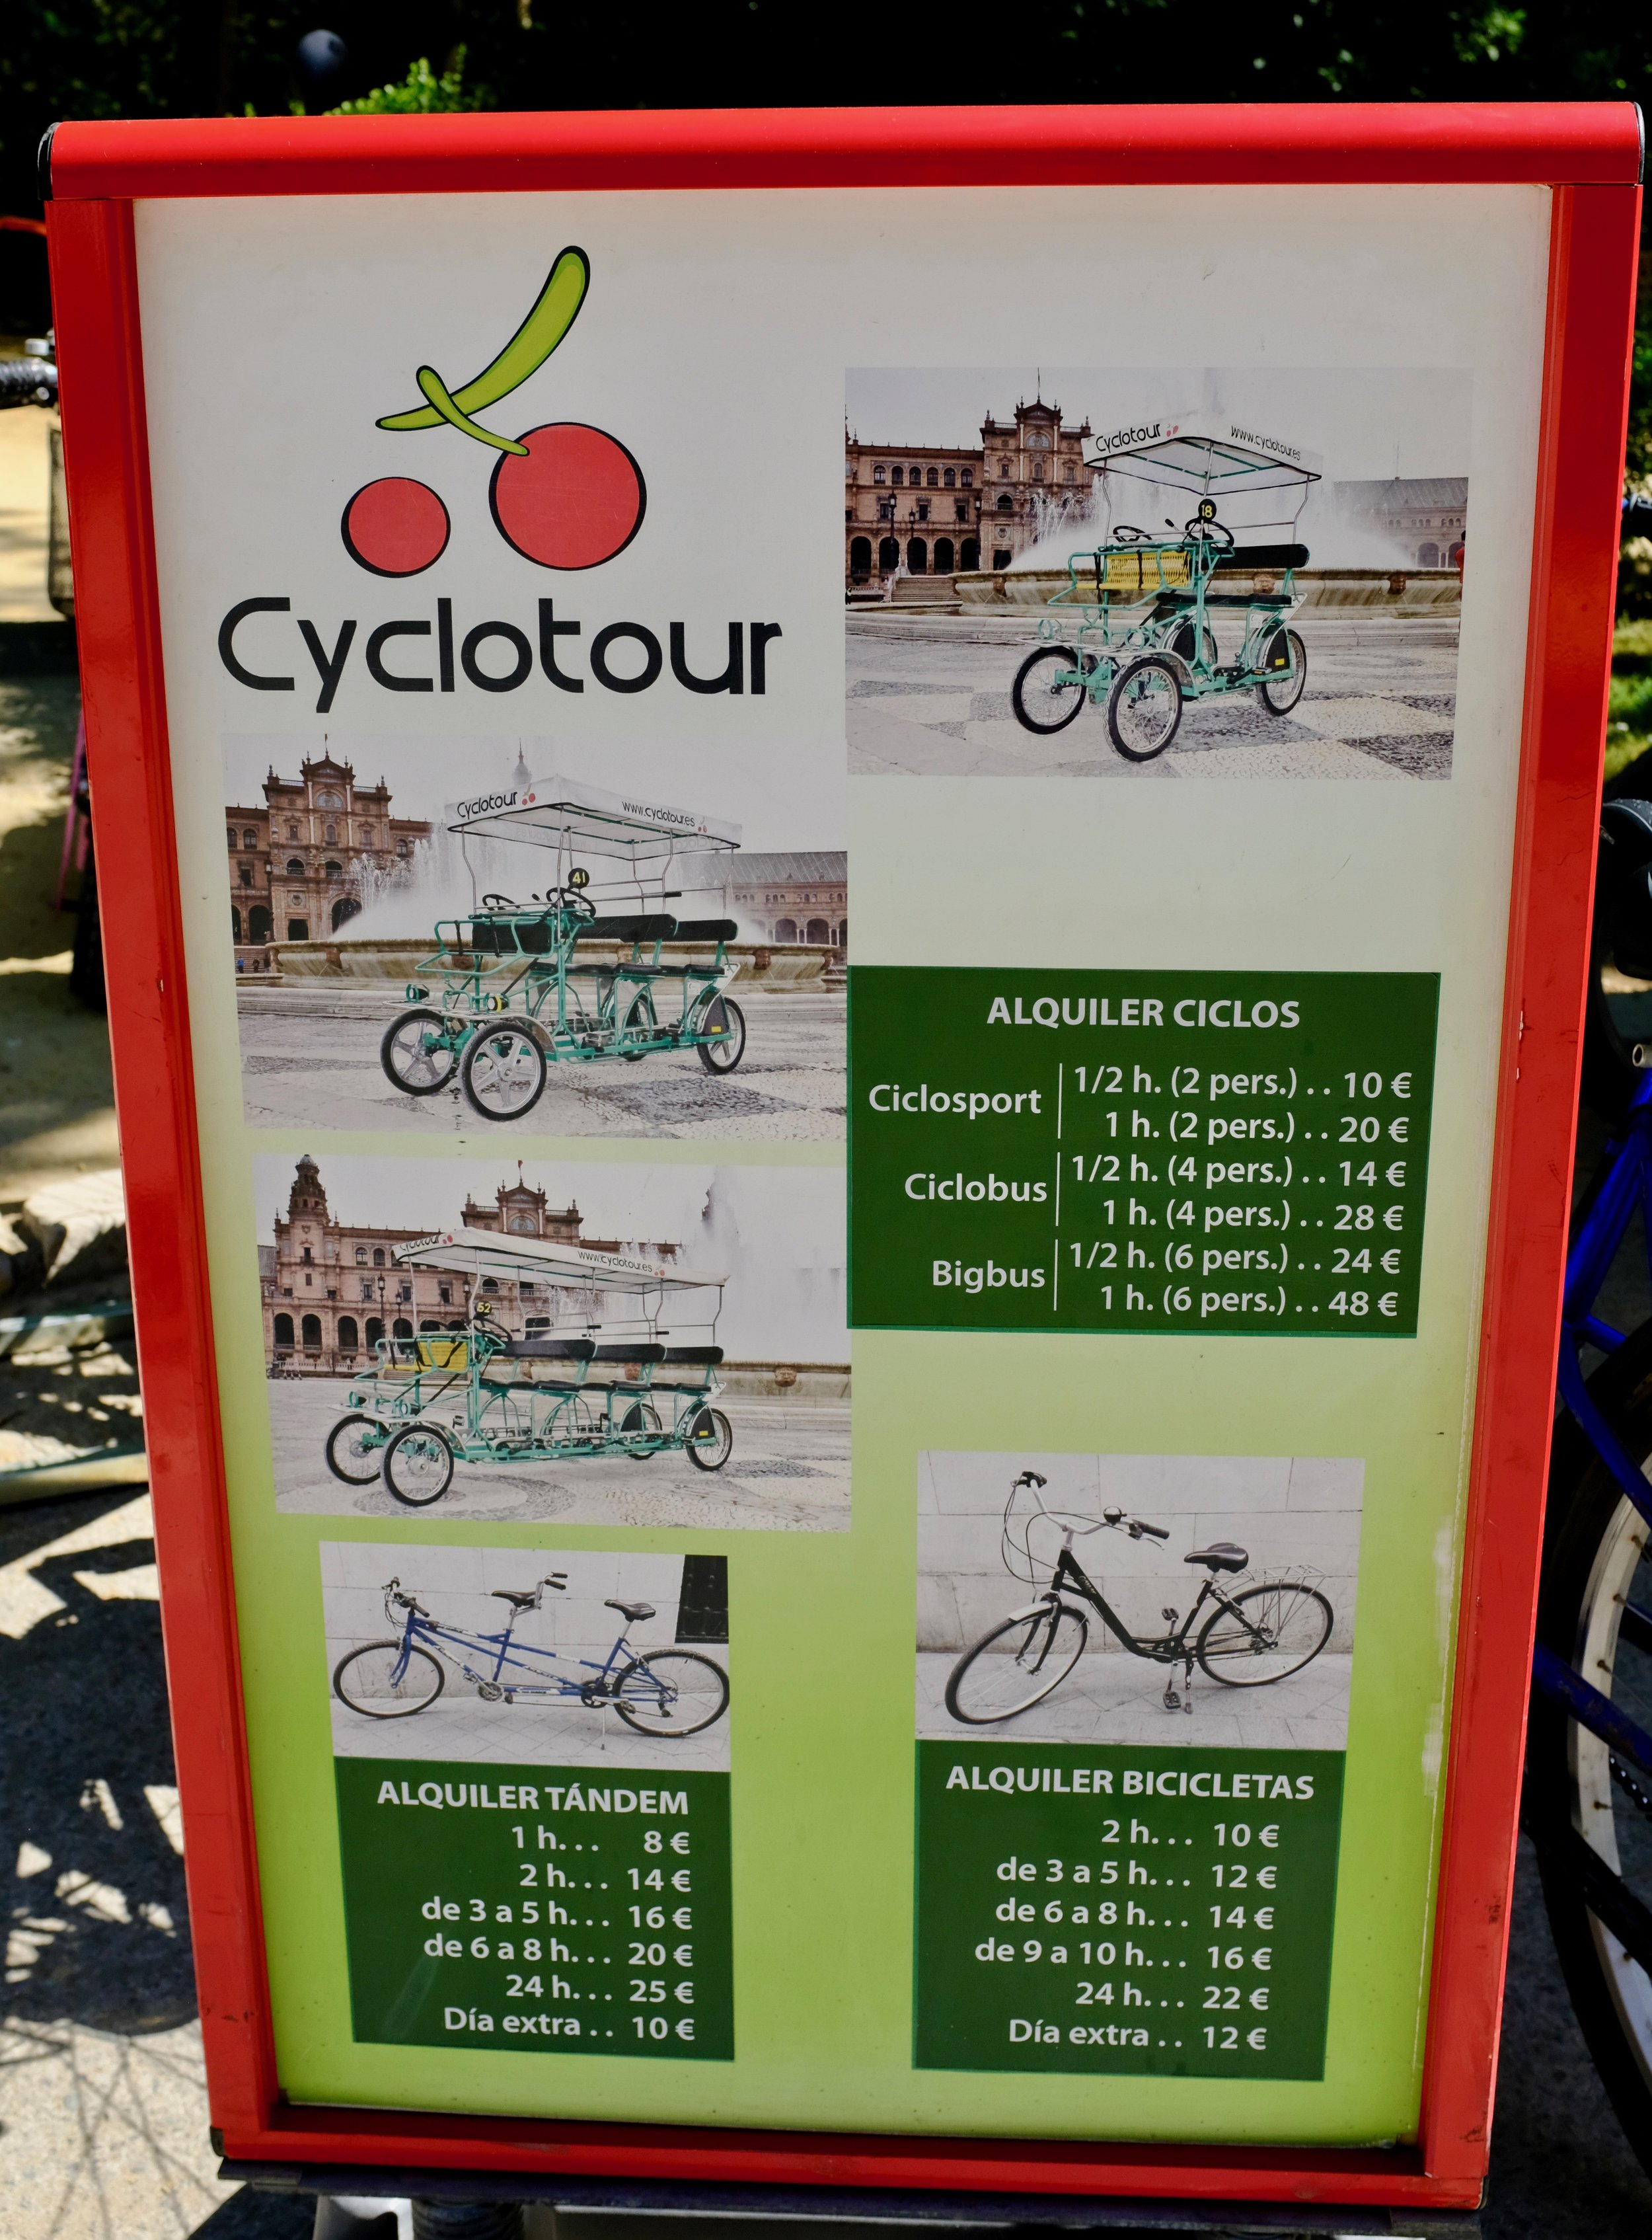 Cyclotour Prices and Renting Options